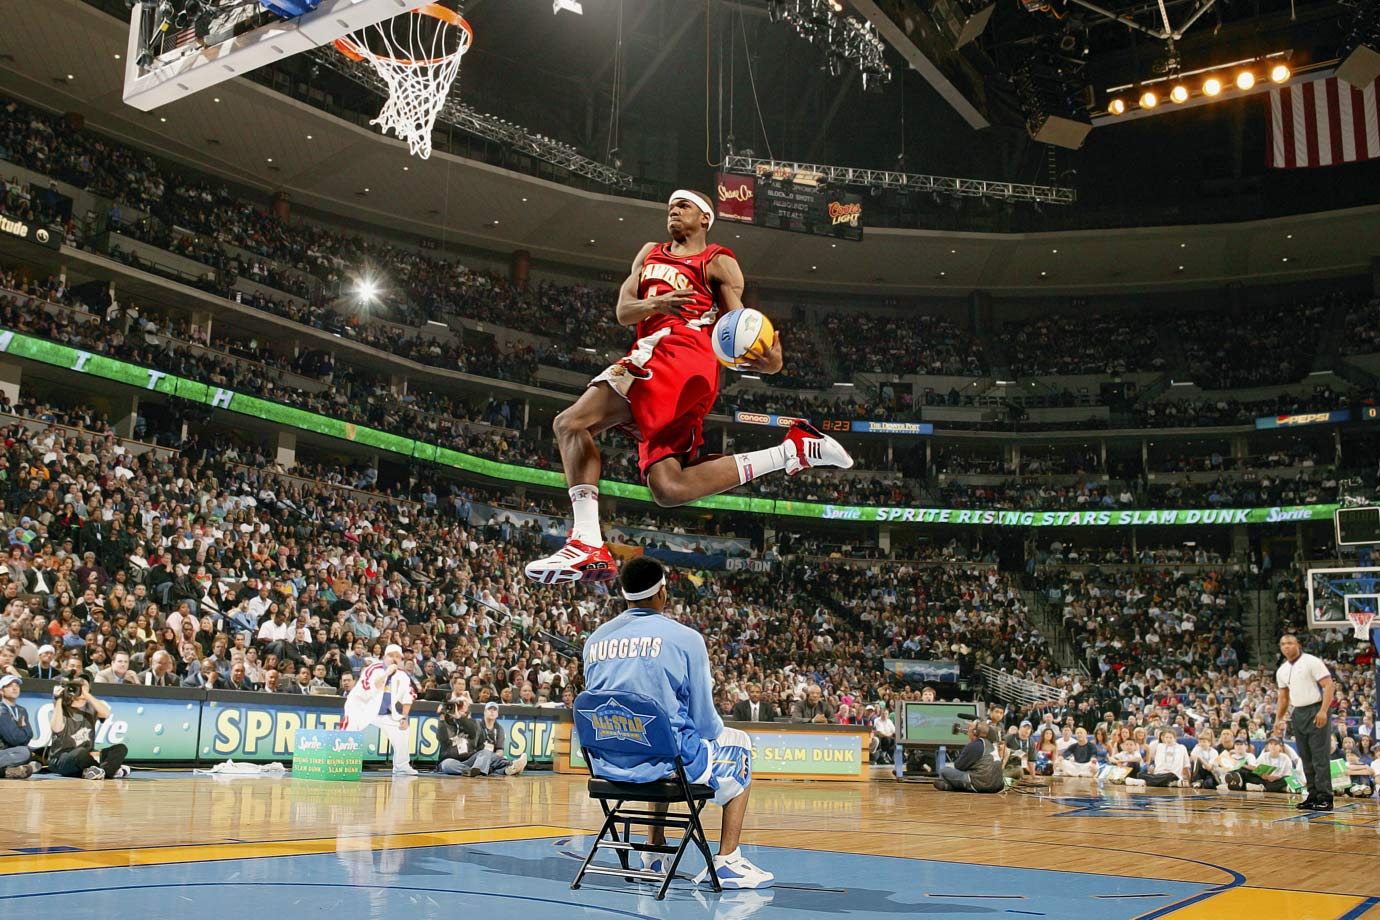 LeBron James flirted with competing but ultimately ceded the stage to Hawks rookie Smith, who scored 50s on both attempts in the finals, including a windmill dunk while wearing Dominique Wilkins' jersey. Meanwhile, in the first round, Chris (Birdman) Anderson needed eighth tries to complete a dunk.